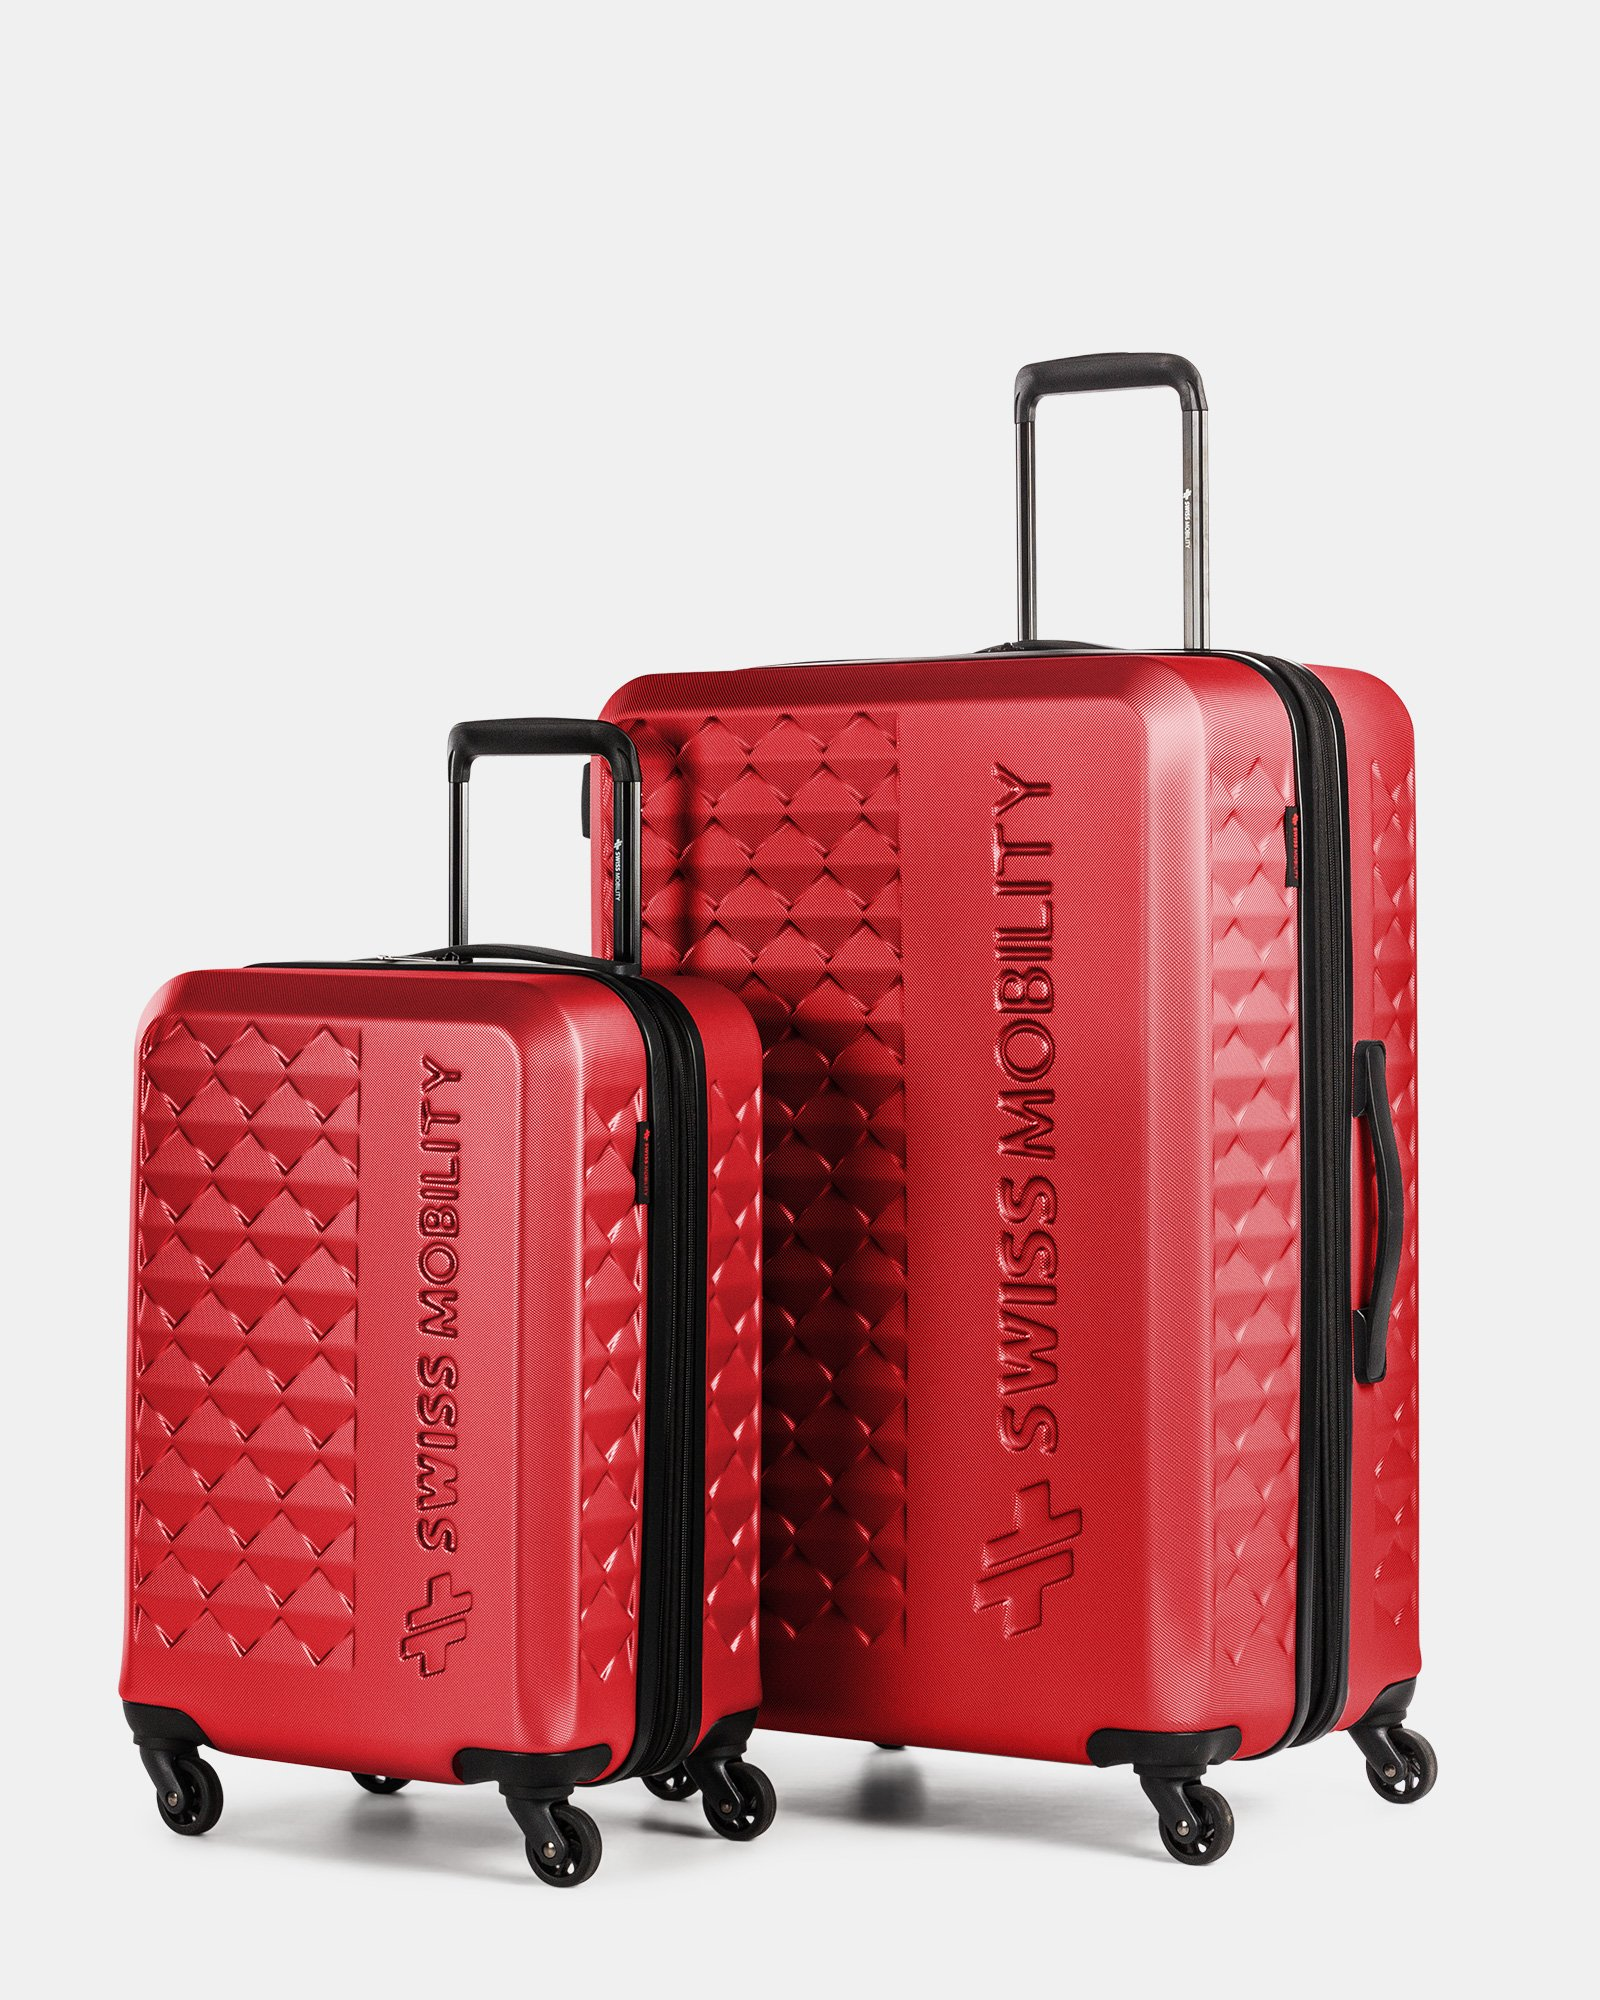 Ridge – 2-Piece Hardside Luggage Set - Swiss Mobility - Zoom